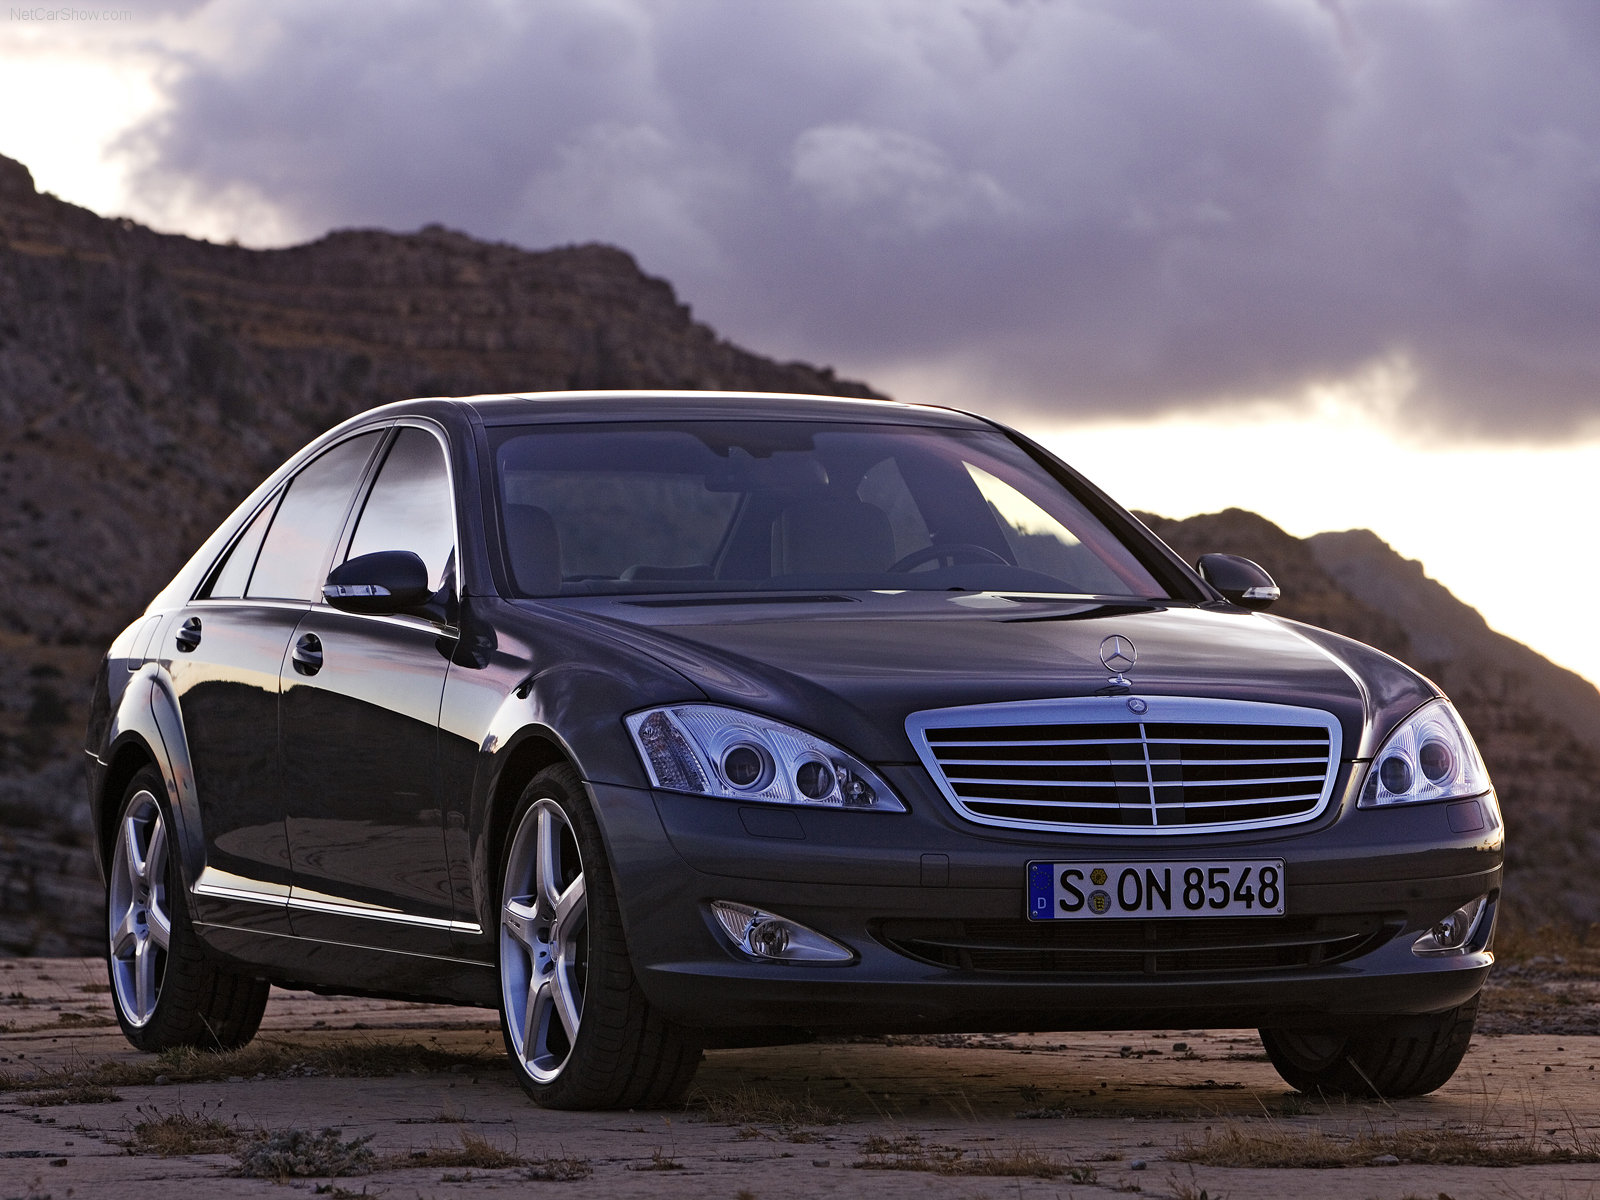 mercedes benz s class w221 photos photogallery with 51. Black Bedroom Furniture Sets. Home Design Ideas